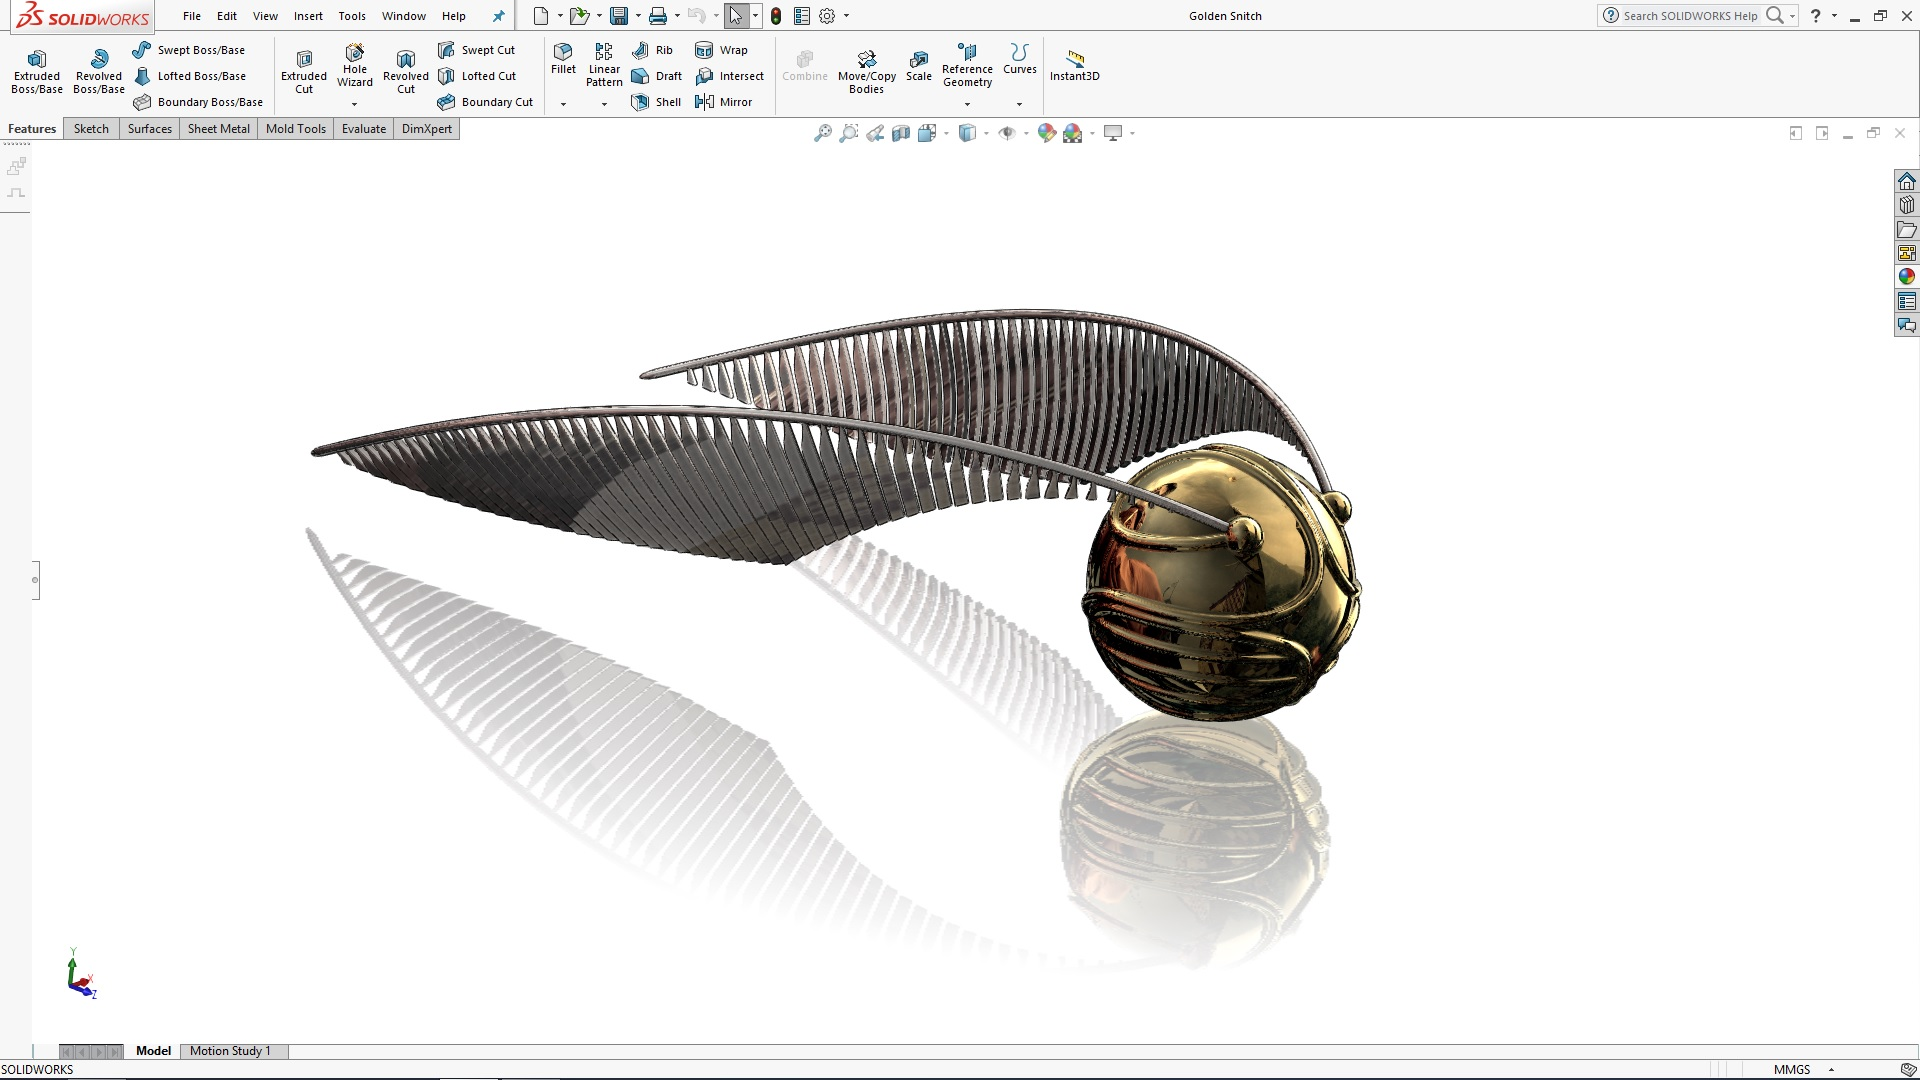 SOLIDWORKS Harry Potter's Golden Snitch Tutorial